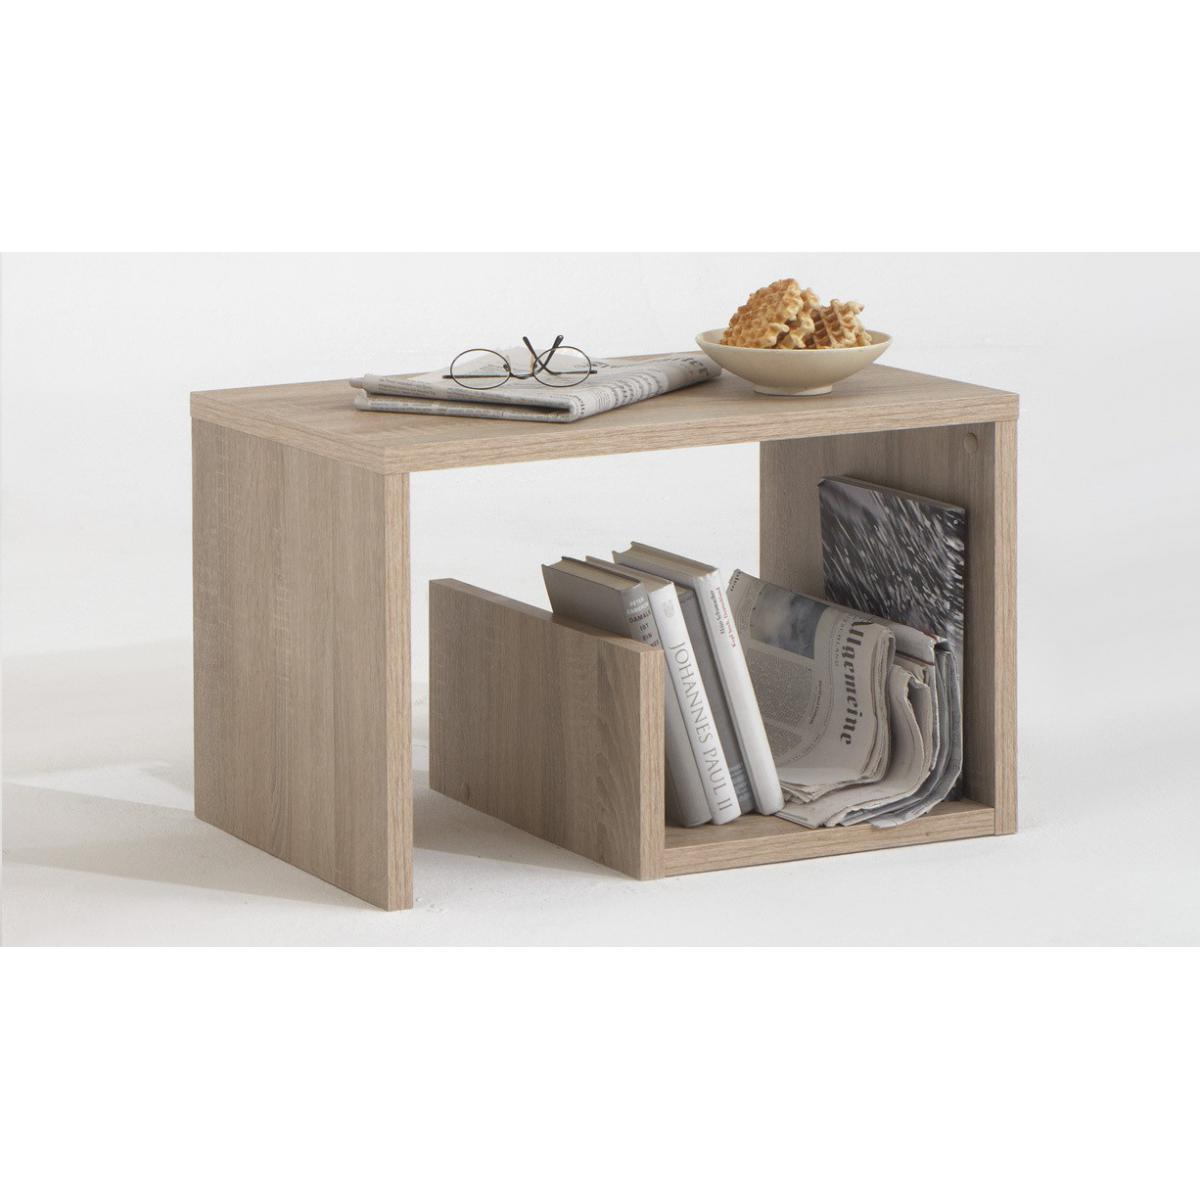 Table d'appoint NIDA SoFactory